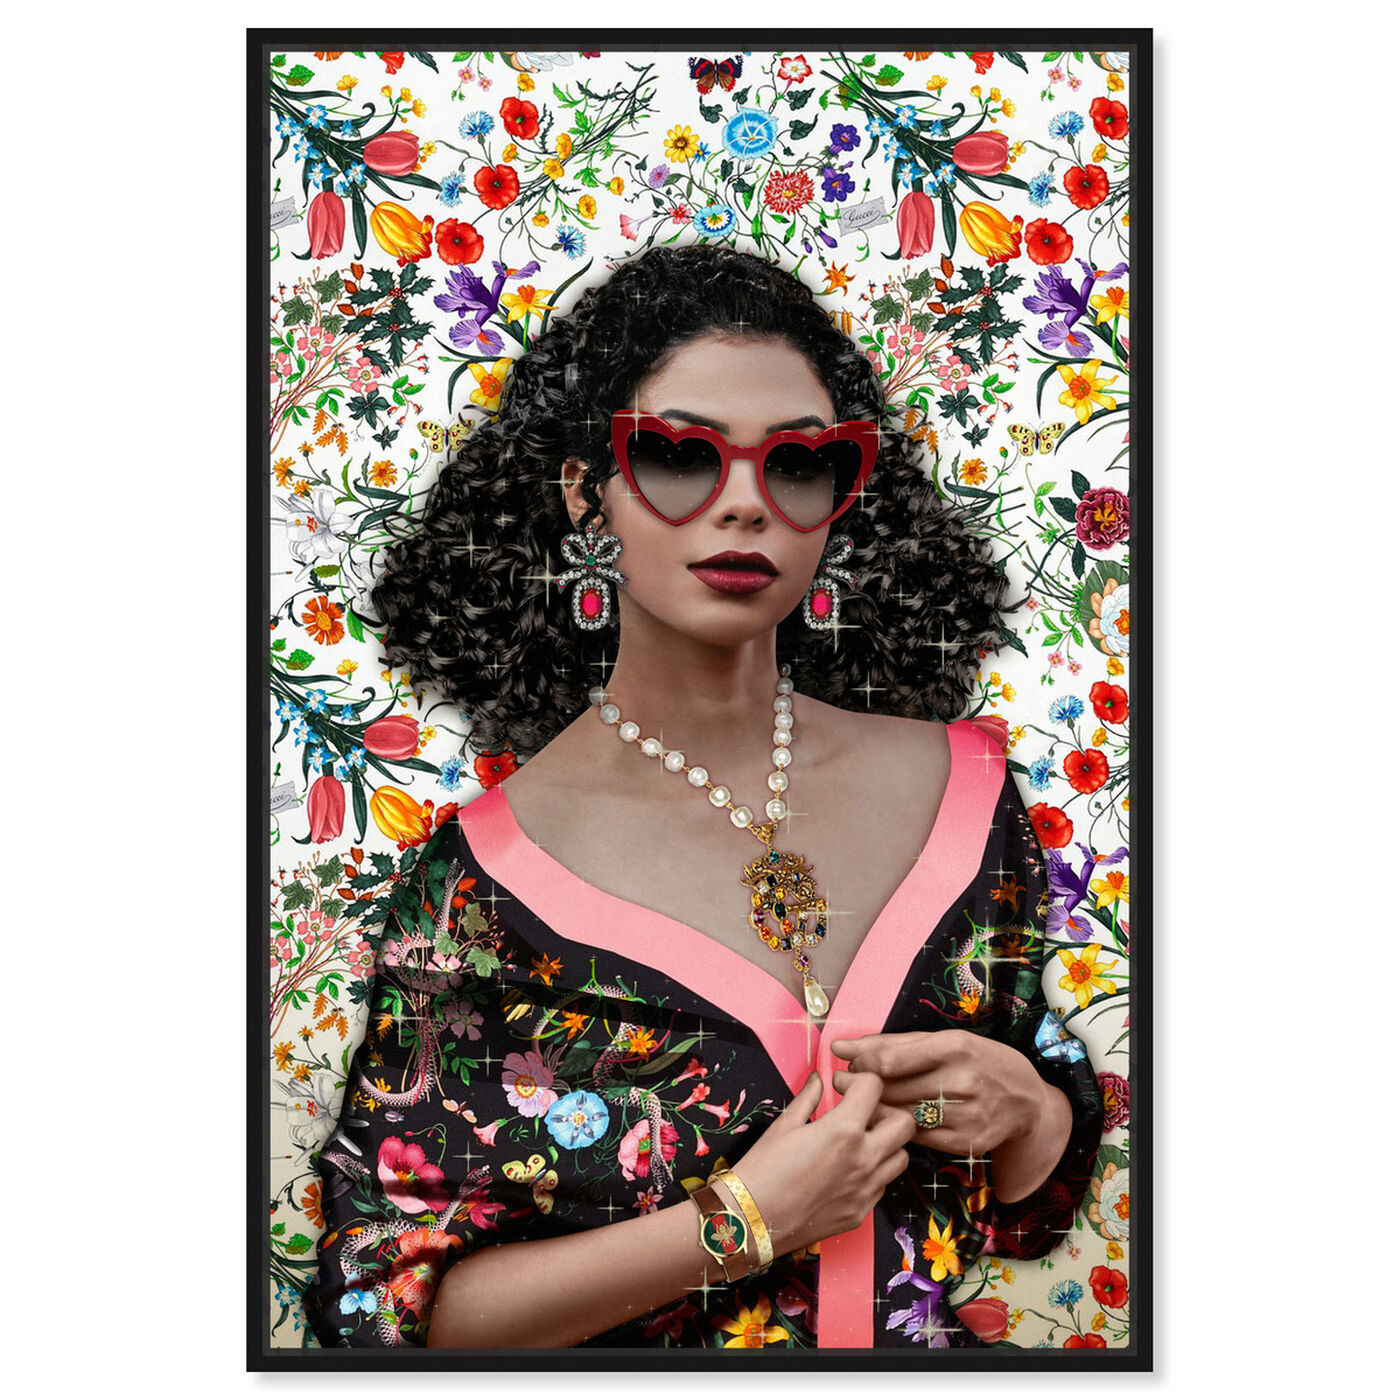 Front view of In a Flower Shower featuring fashion and glam and portraits art.